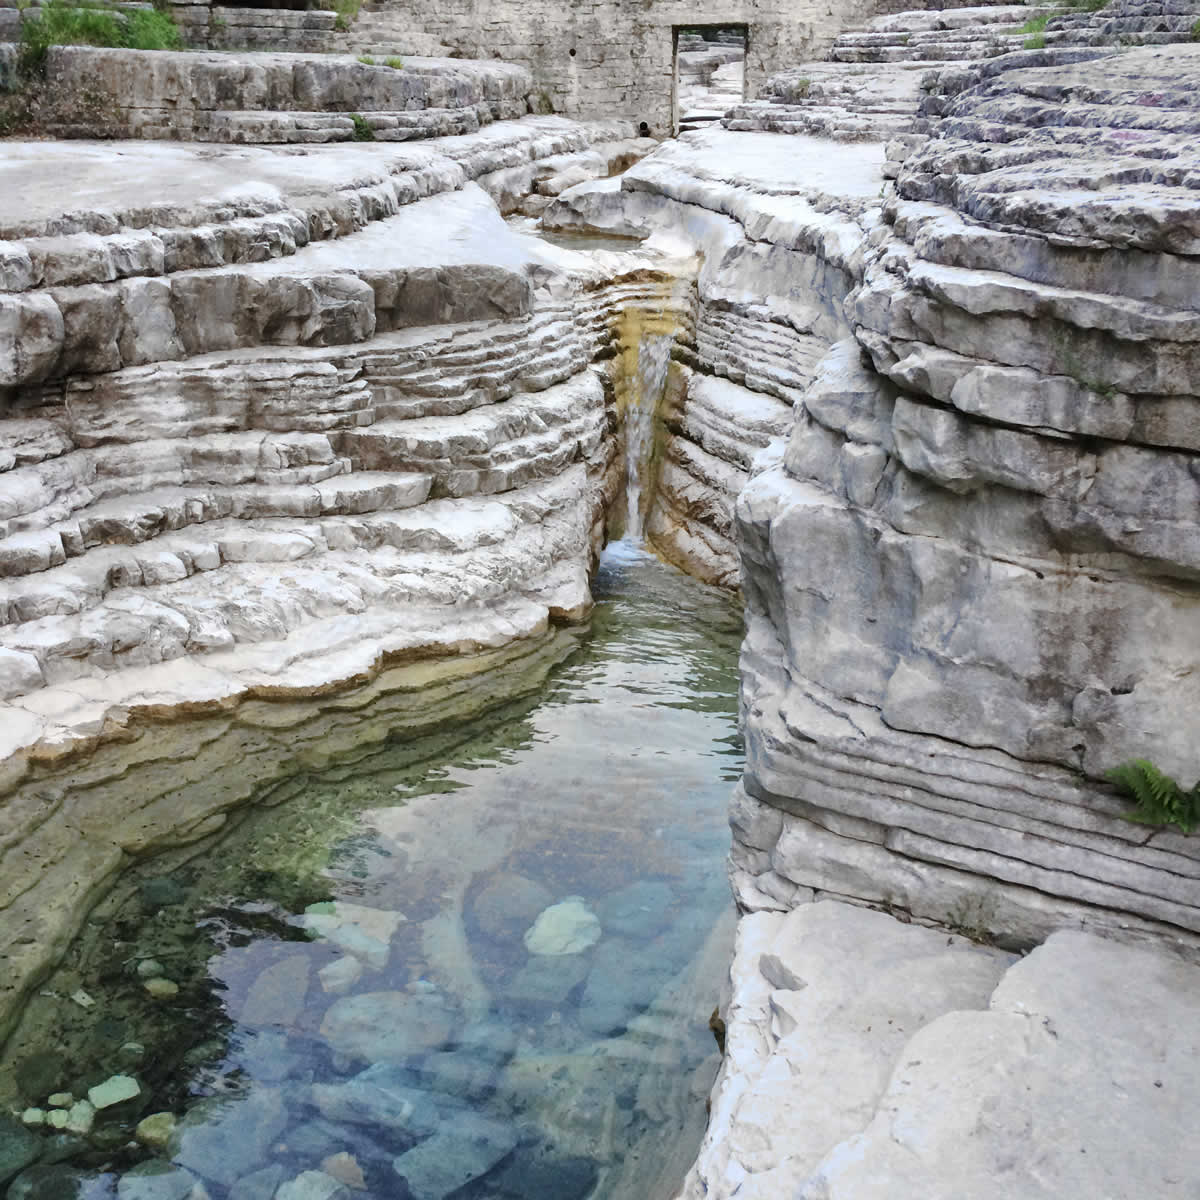 Ovires or Kolybethres natural pools, in Papigo, Zagori, are natural fonts created by the erosion of the lime rock bed due to the flowing water of Rogovo stream on it's downward trip from Mt. Tymphe